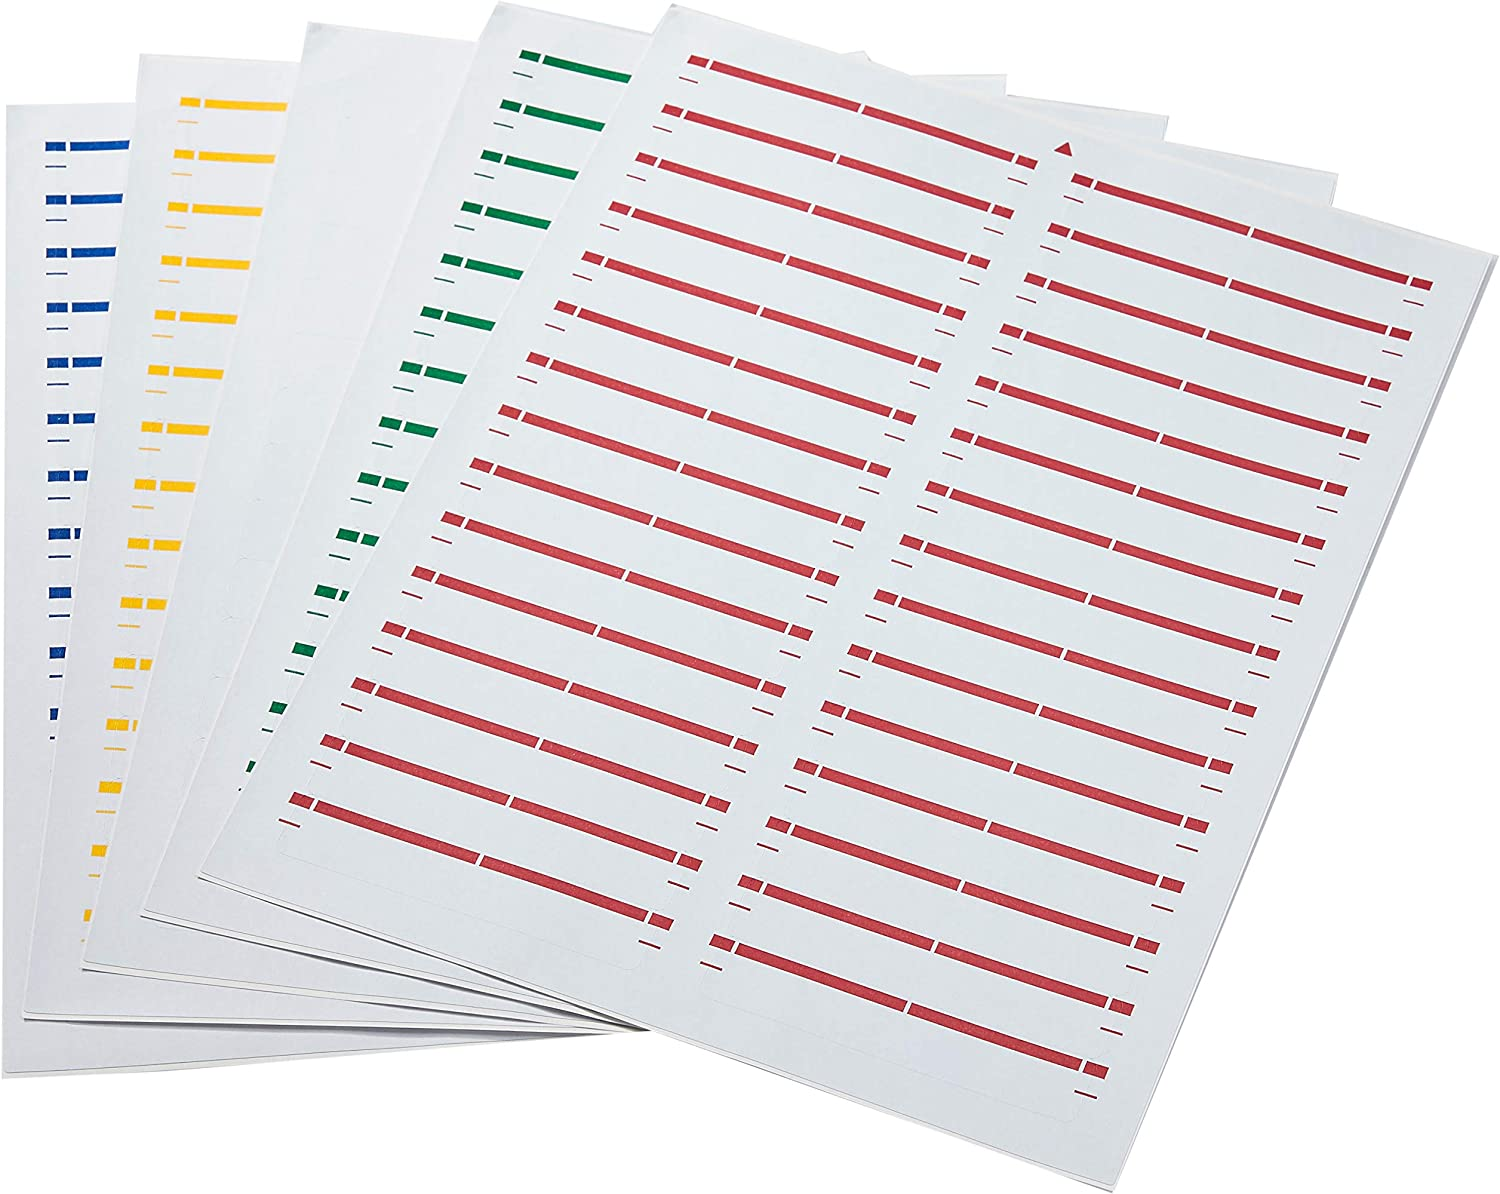 AmazonBasics File Folder Labels in Assorted Colors for Laser and Inkjet Printers, 0.67 x 3.43 Inches, 750-Pack